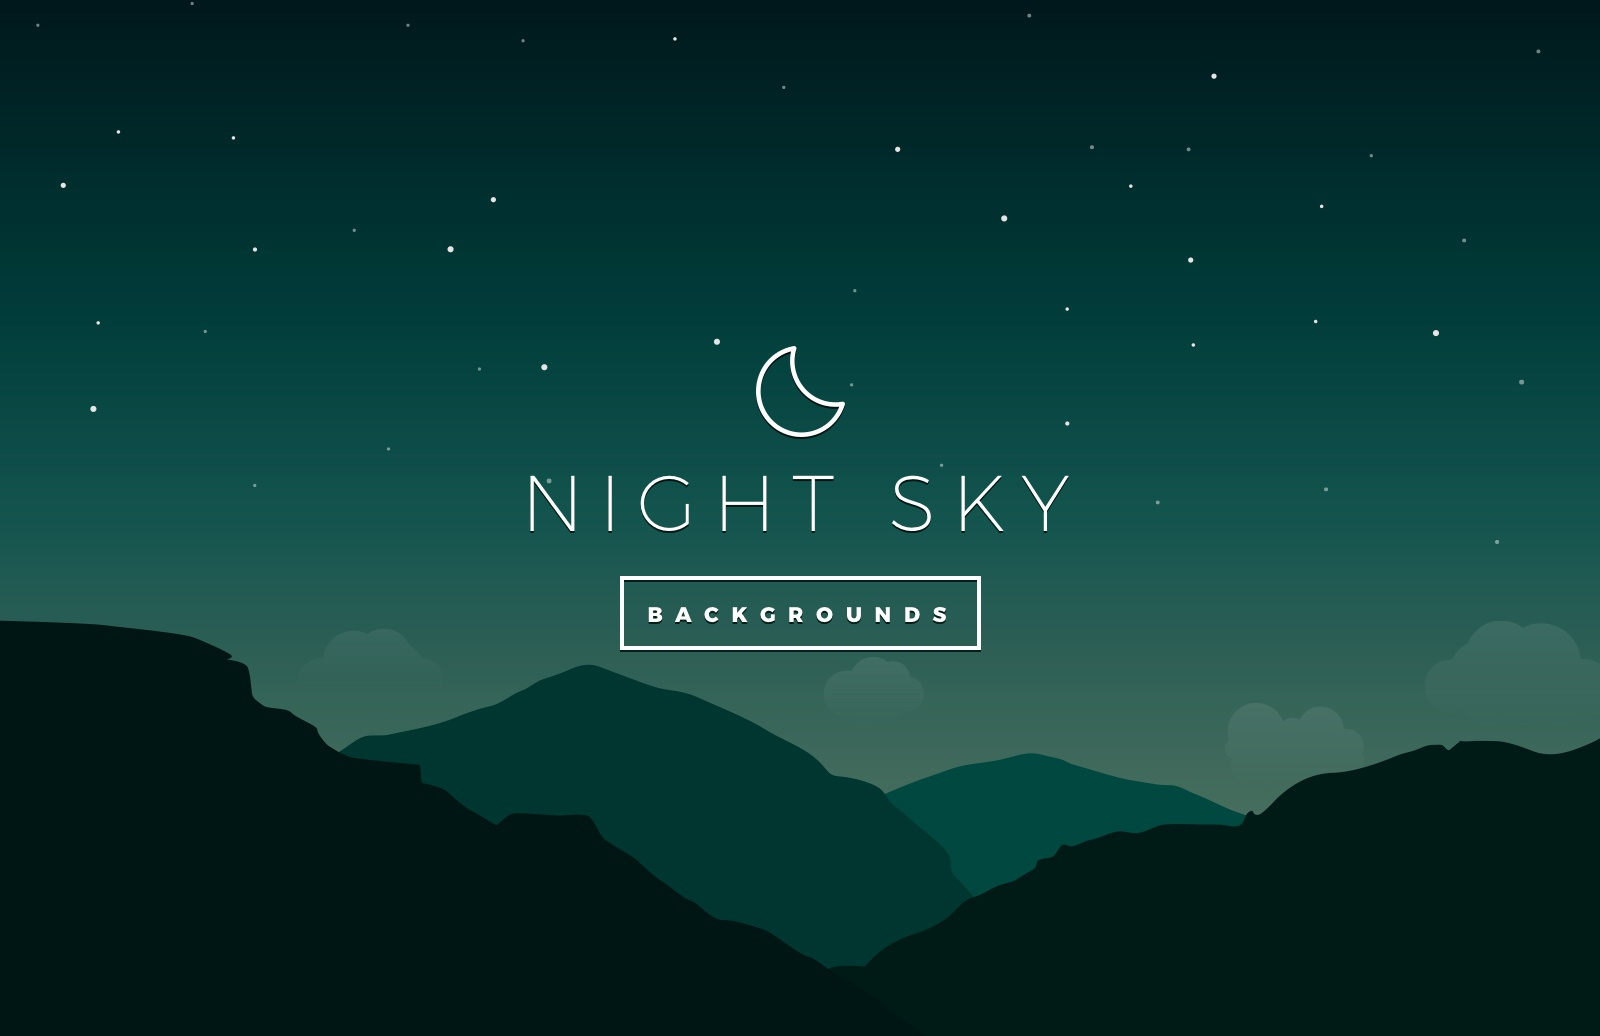 dribbble night sky vector backgrounds preview 5 jpg by tony thomas rh dribbble com watercolor night sky vector night sky vector image